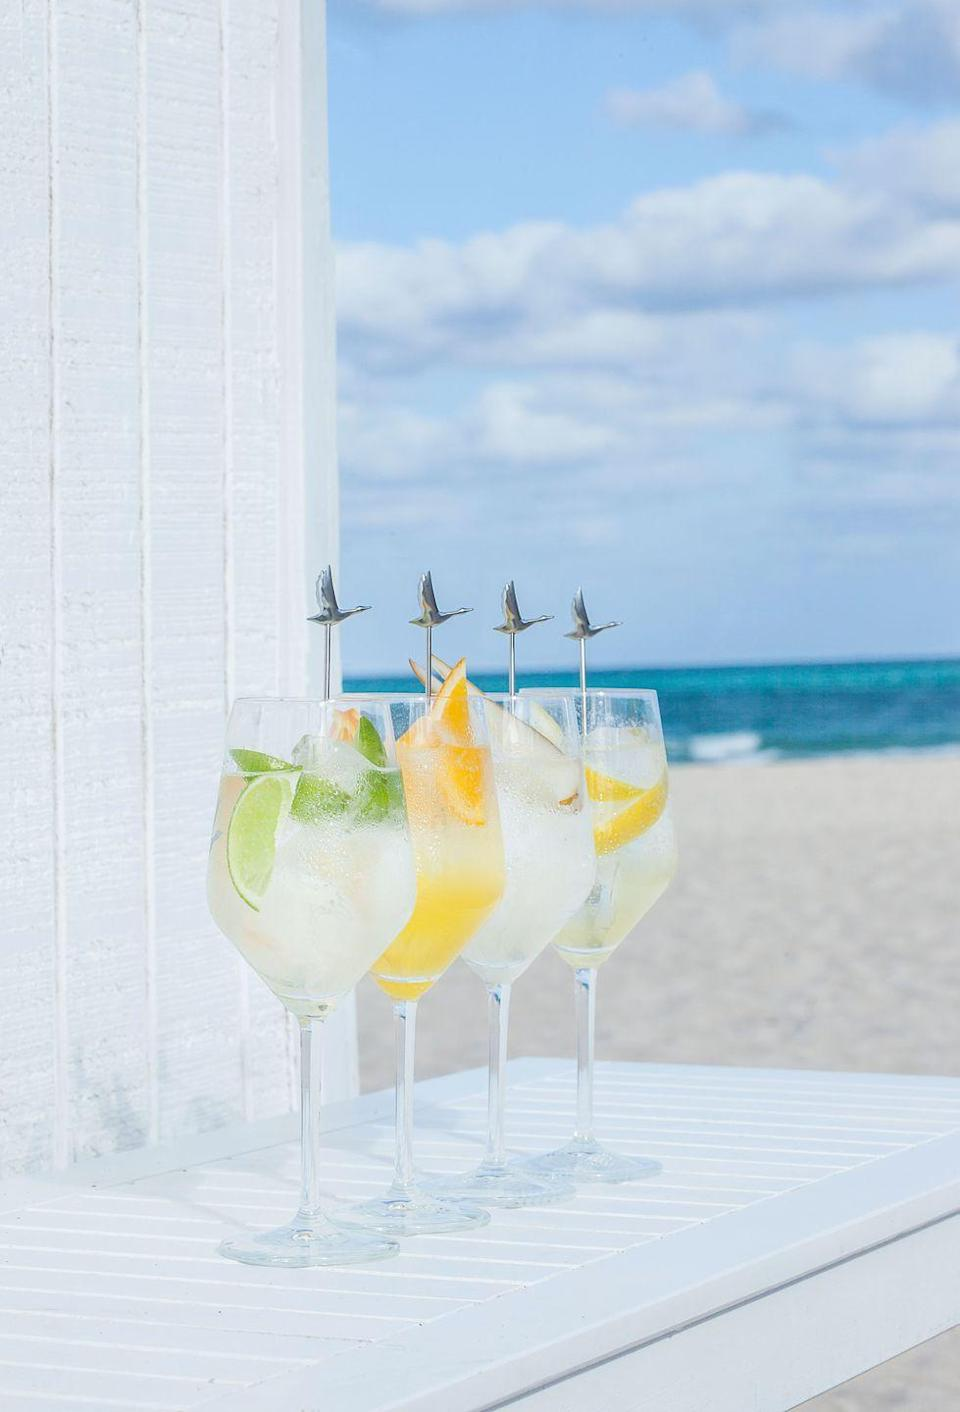 <p><strong>Ingredients:</strong></p><p>1.5 oz Grey Goose Vodka<br>1 oz St-Germain Elderflower Liqueur<br>½ oz freshly squeezed lime (approx. half a lime)<br>3 lime wedges<br>2 parts chilled soda water<br><br><strong>Instructions:</strong><br>Build in an oversized cabernet wine glass with lots of ice.<br>Add Grey Goose Vodka and St-Germain. Then squeeze fresh lime and discard. Top with chilled soda water. Stir and garnish with fresh lime wedges and a Grey Goose stirrer.</p>